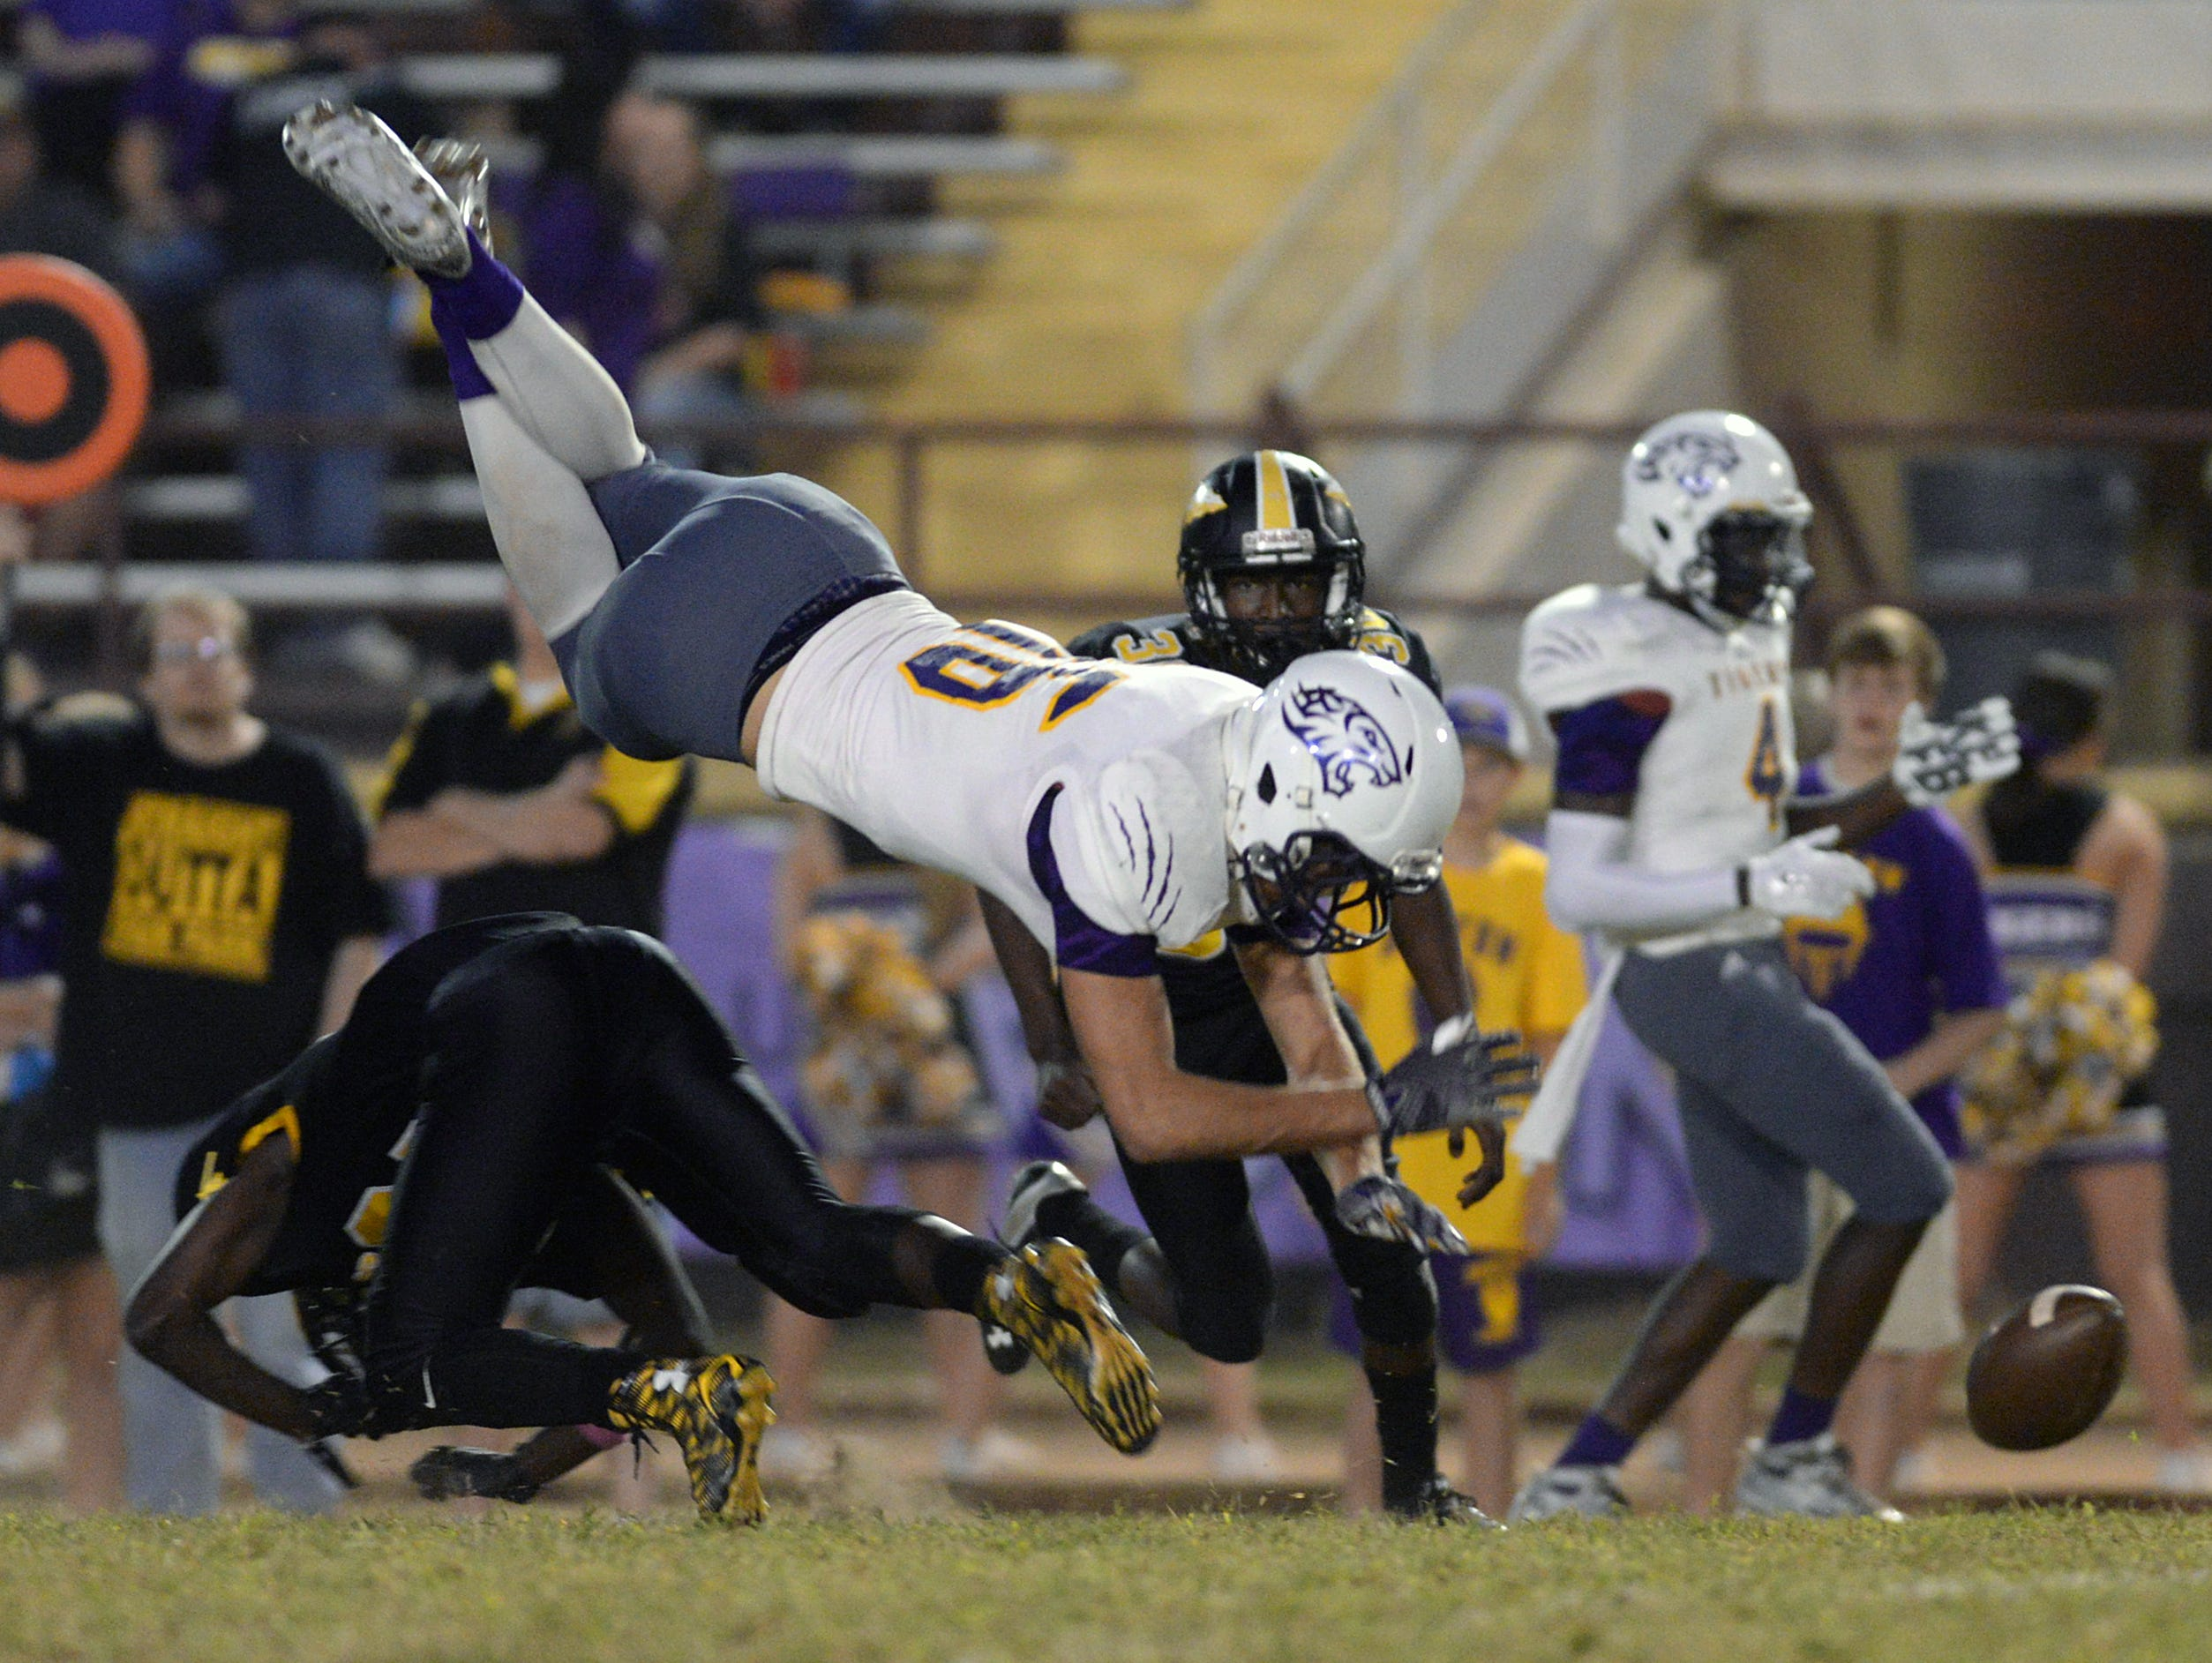 Fair Park's Latrevione Davis up ends John Westmoreland of Benton, breaking up a pass attempt in the first quarter of their game.